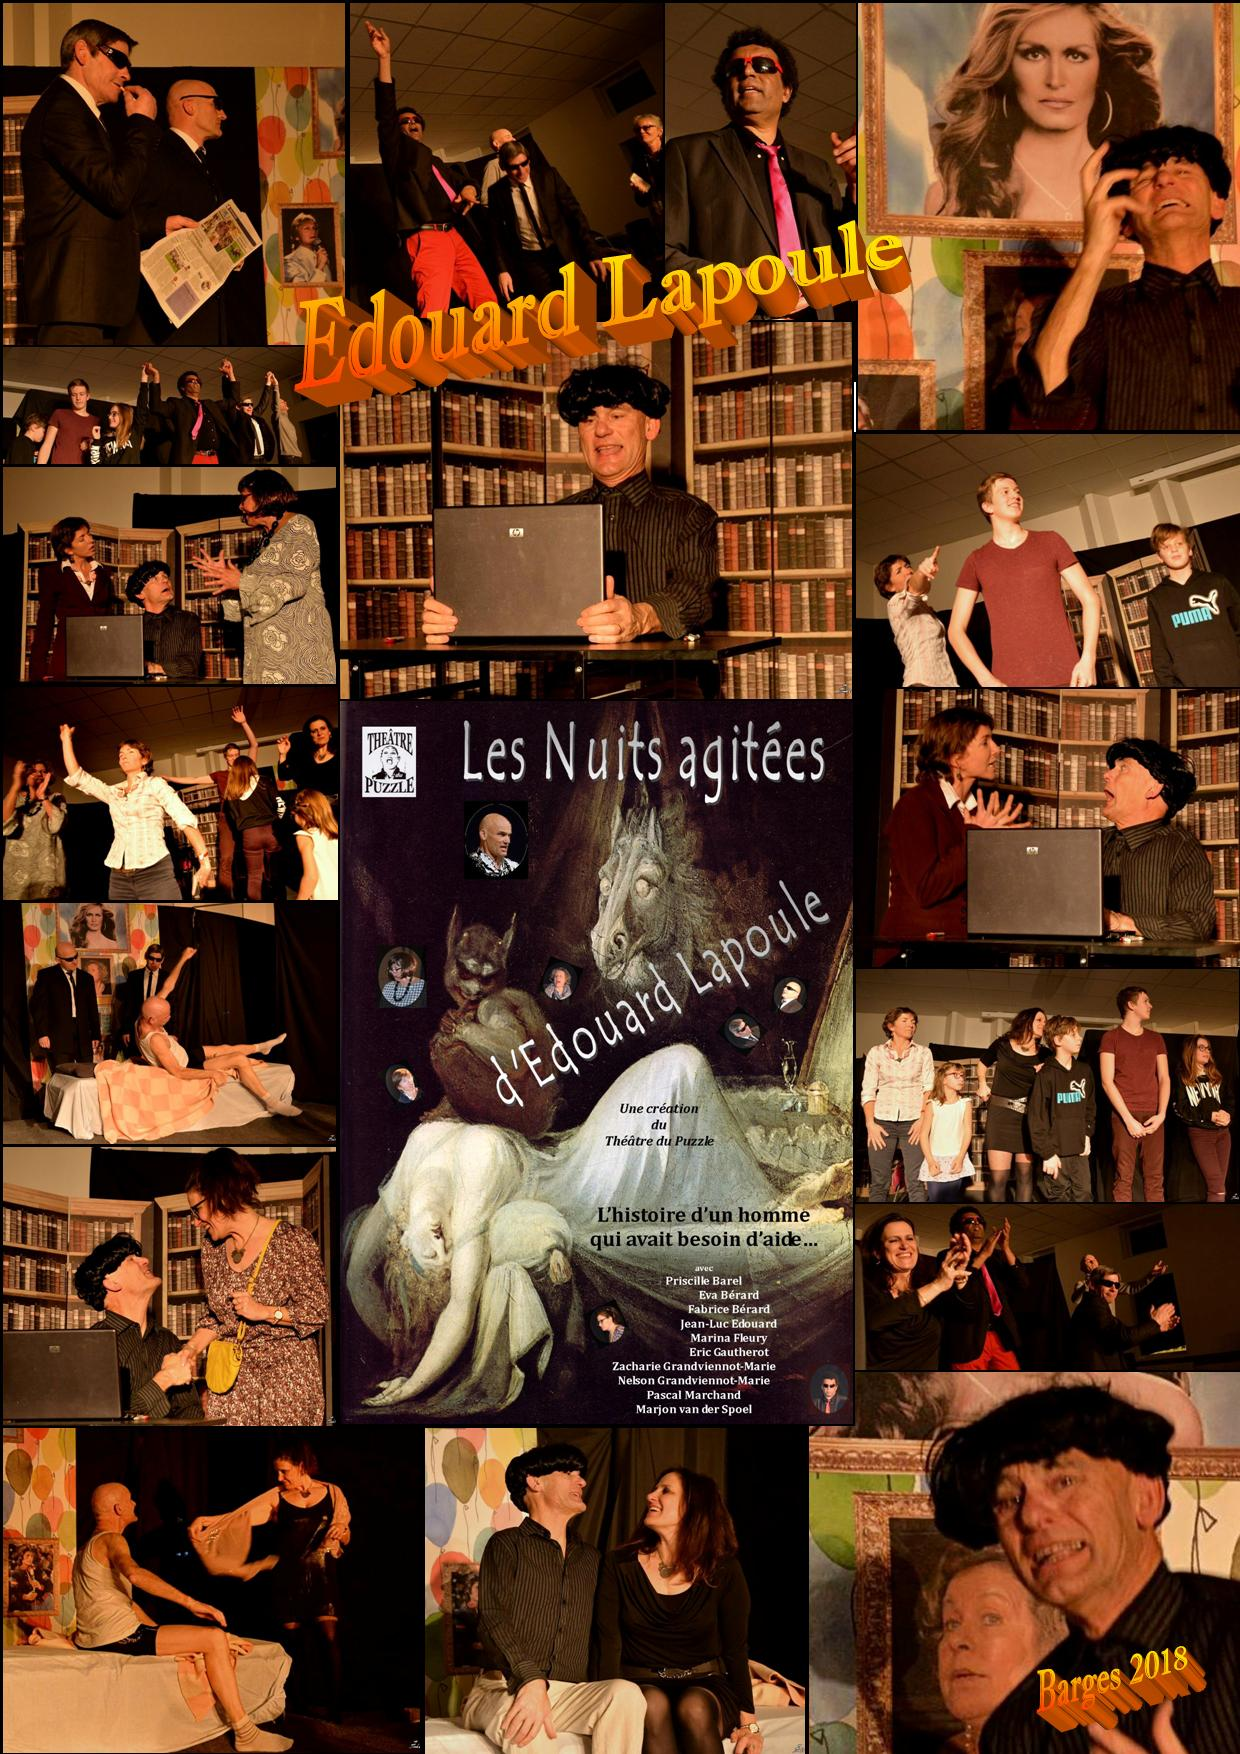 Poster Edouard Lapoule Barges 2018.jpg